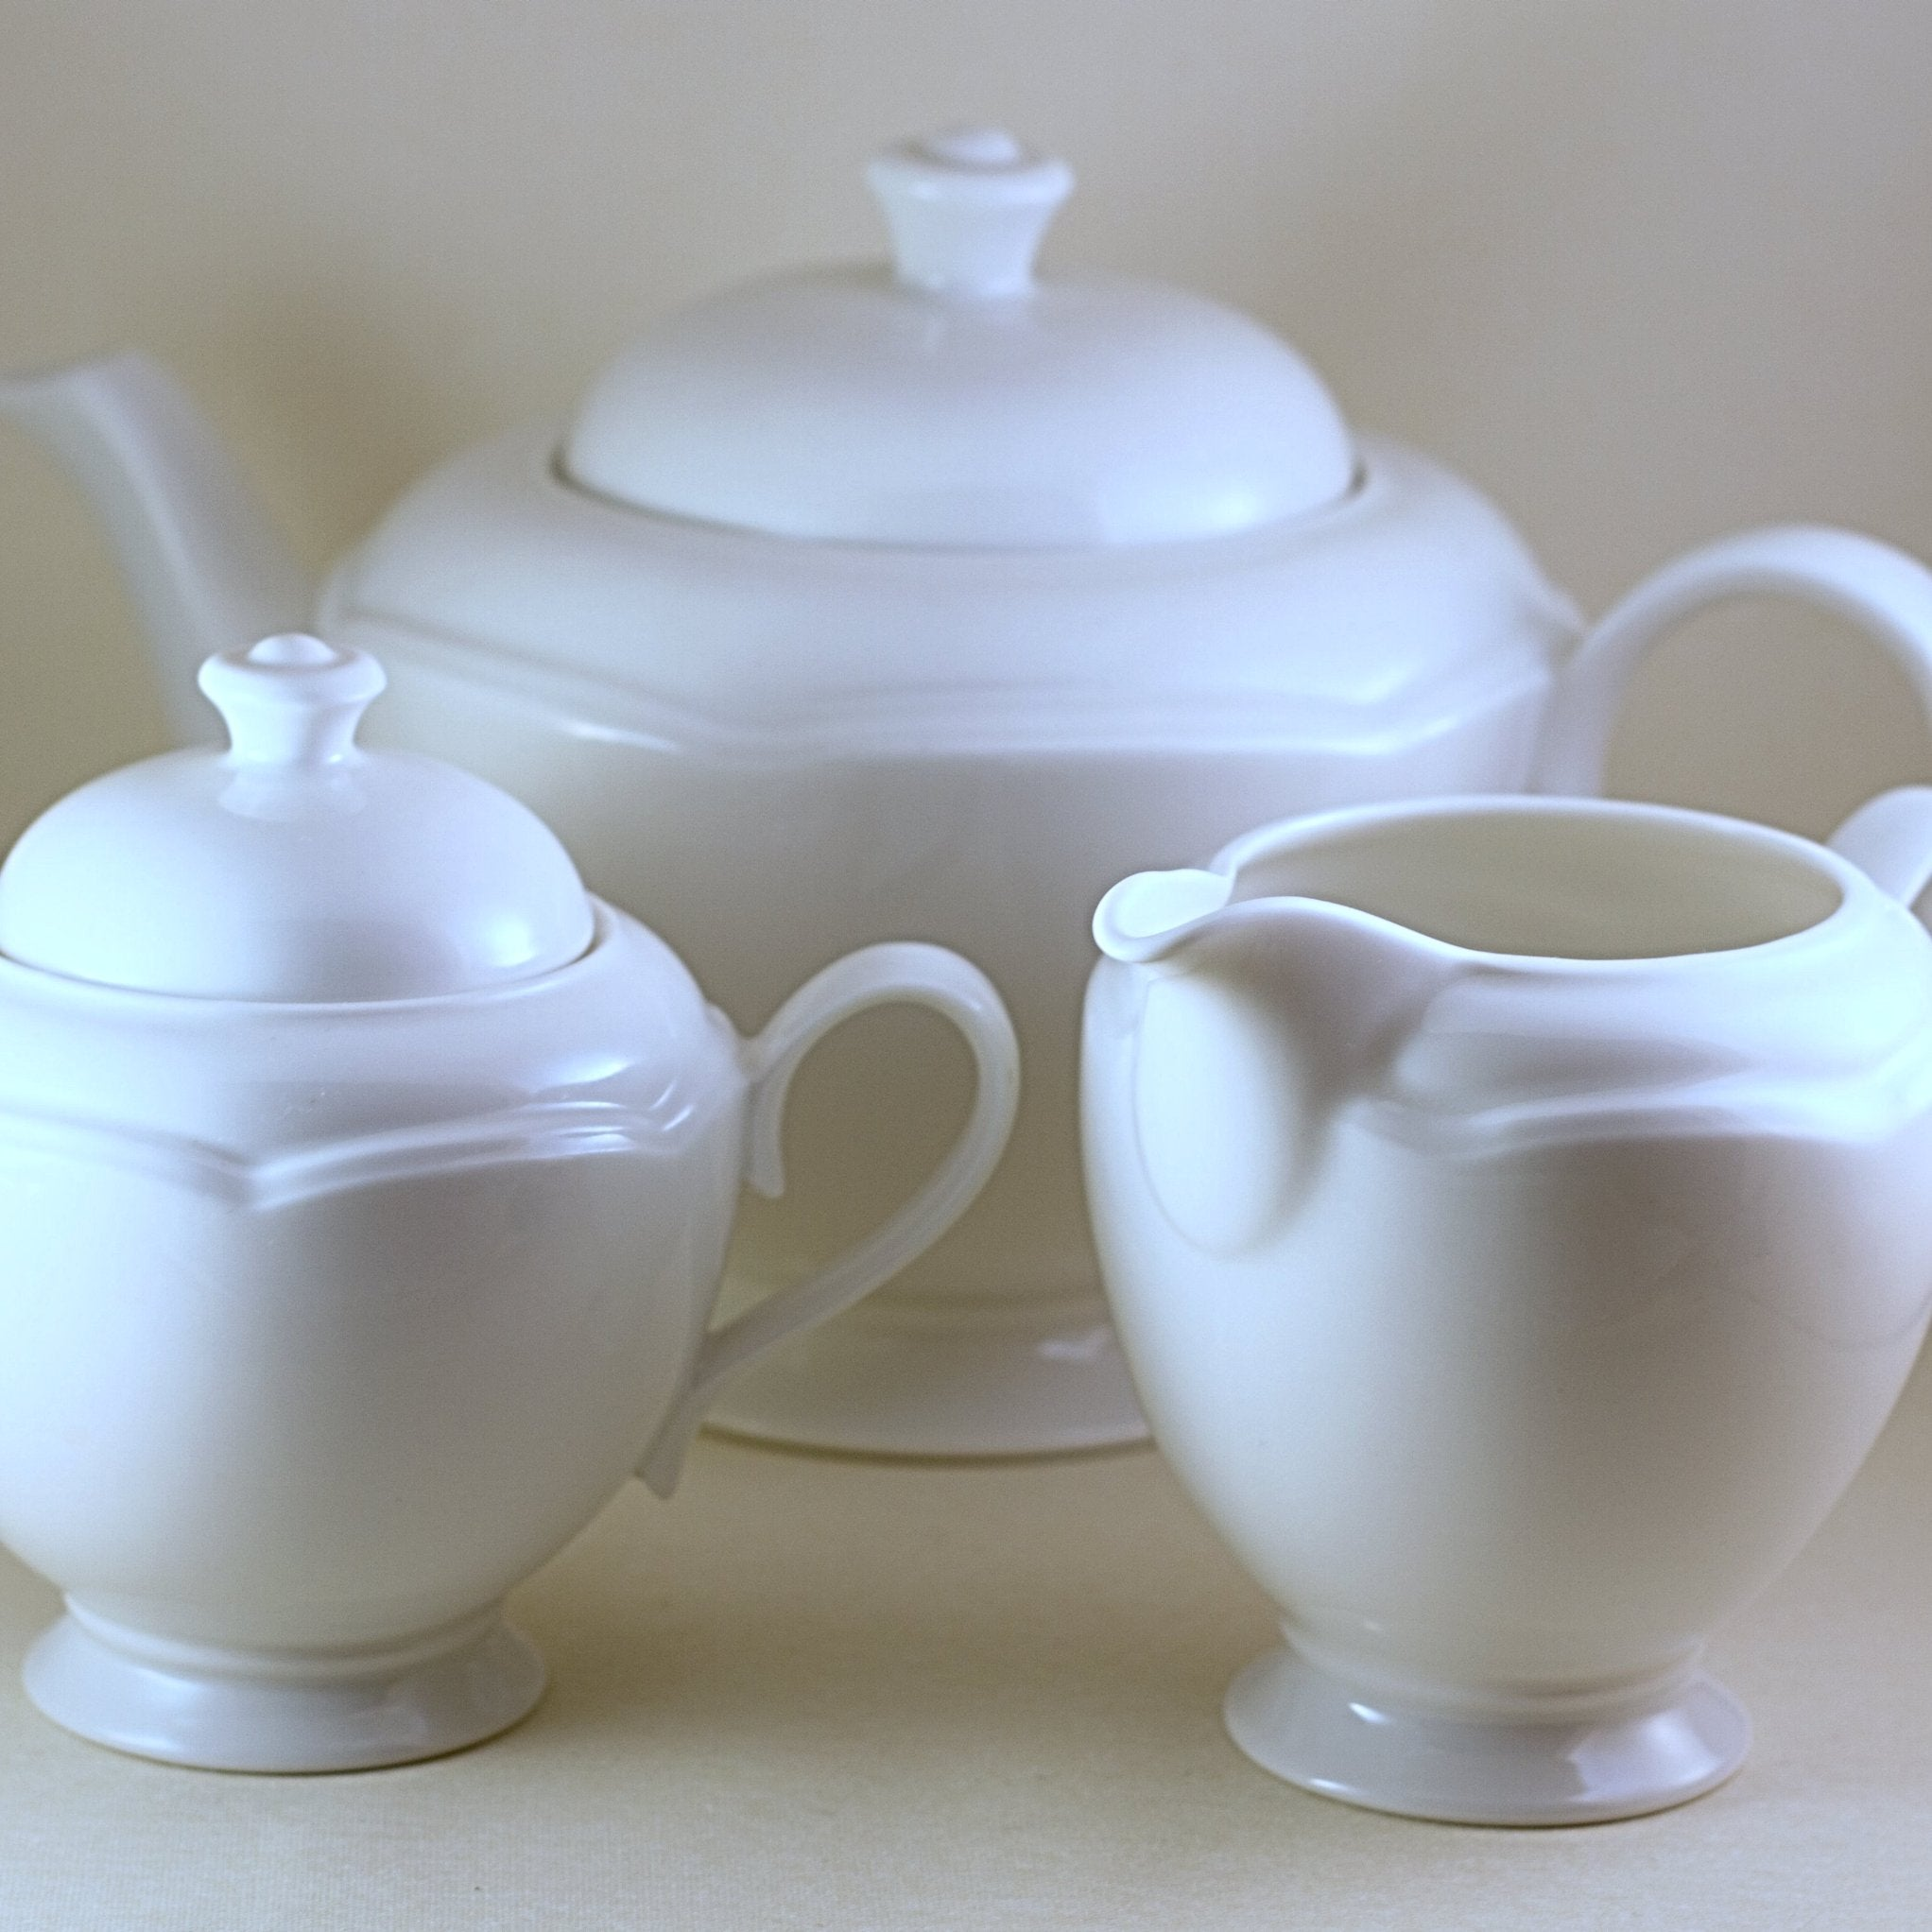 JOHNSON BROTHERS STAFFORDSHIRE English Fine China Three Piece Tea Set - London White Pattern